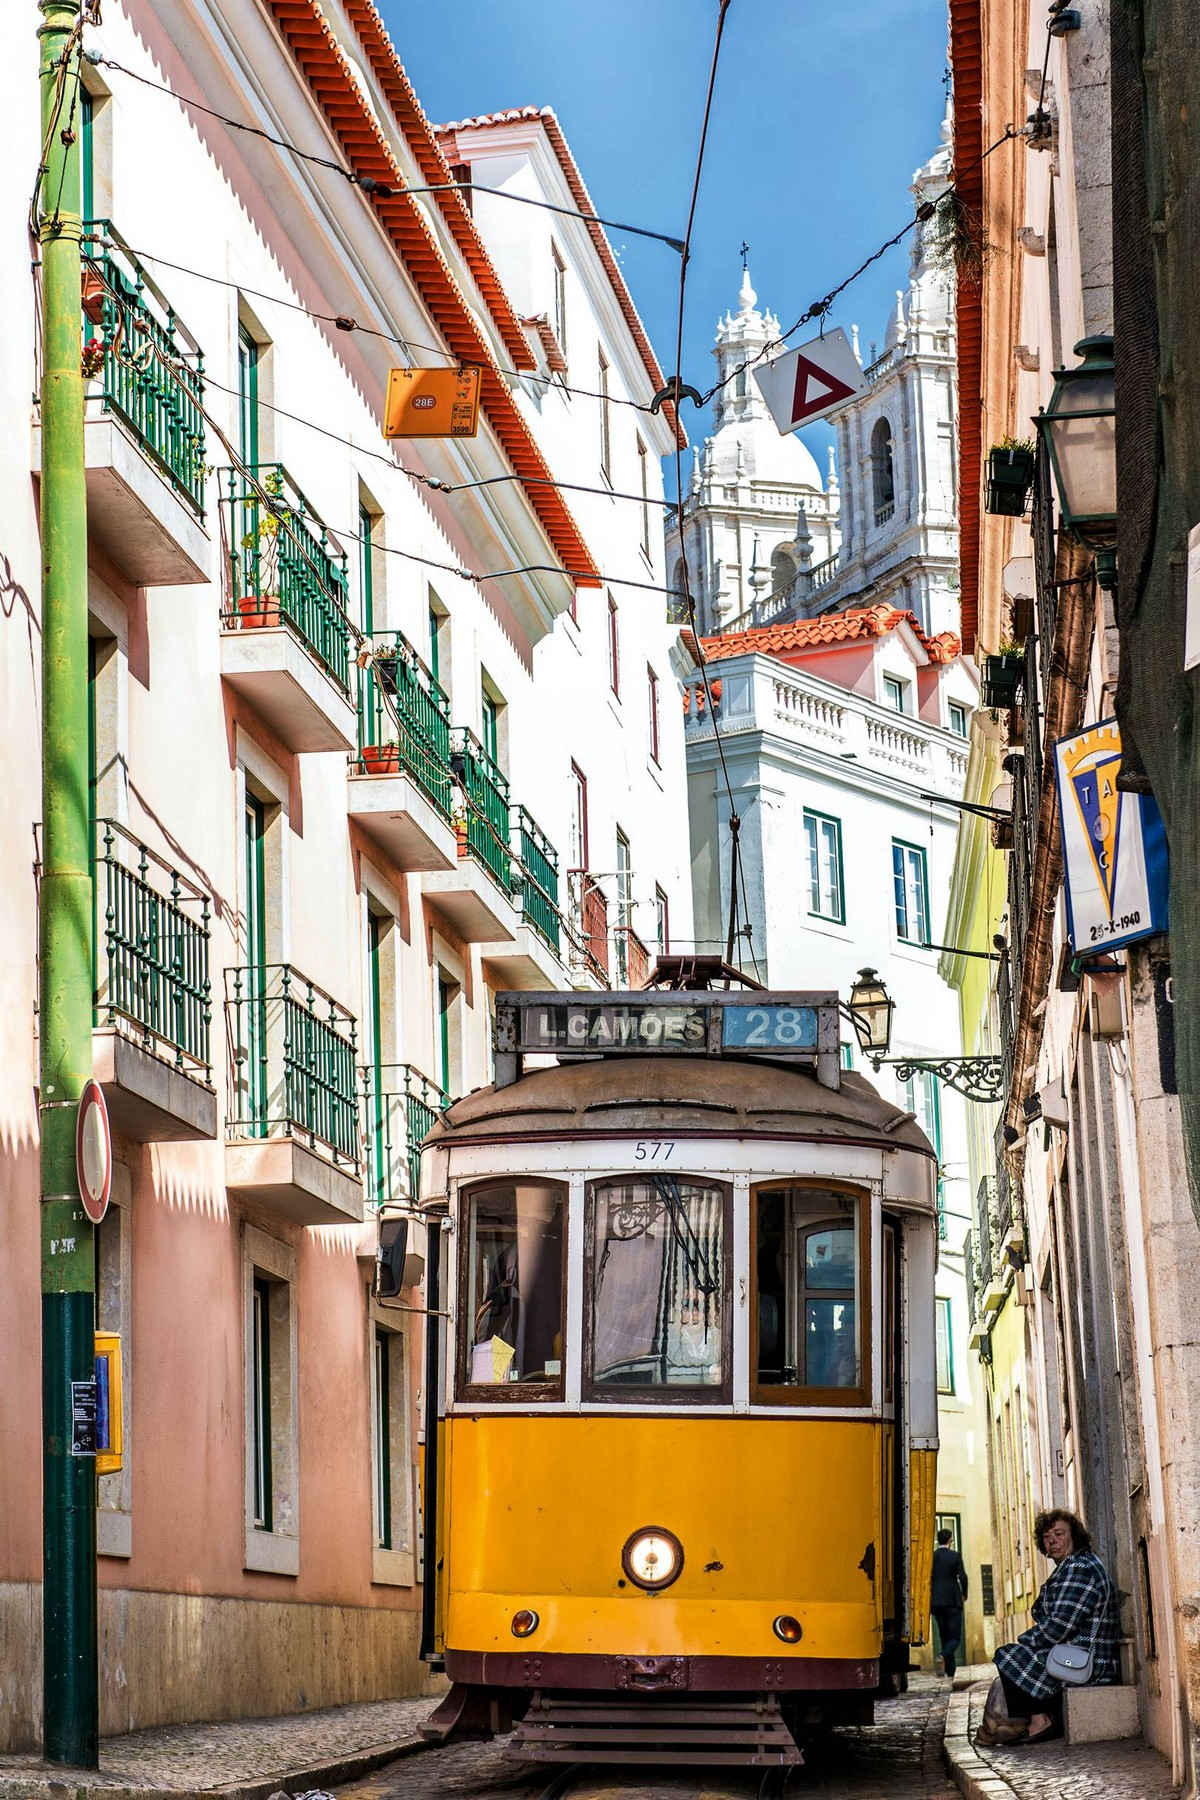 Lisbon Is The World's Leading City Break Destination 2019 world's leading city break destination 2019 Lisbon Is The World's Leading City Break Destination 2019 Lisbon Is The Worlds Leading City Break Destination 2019 2